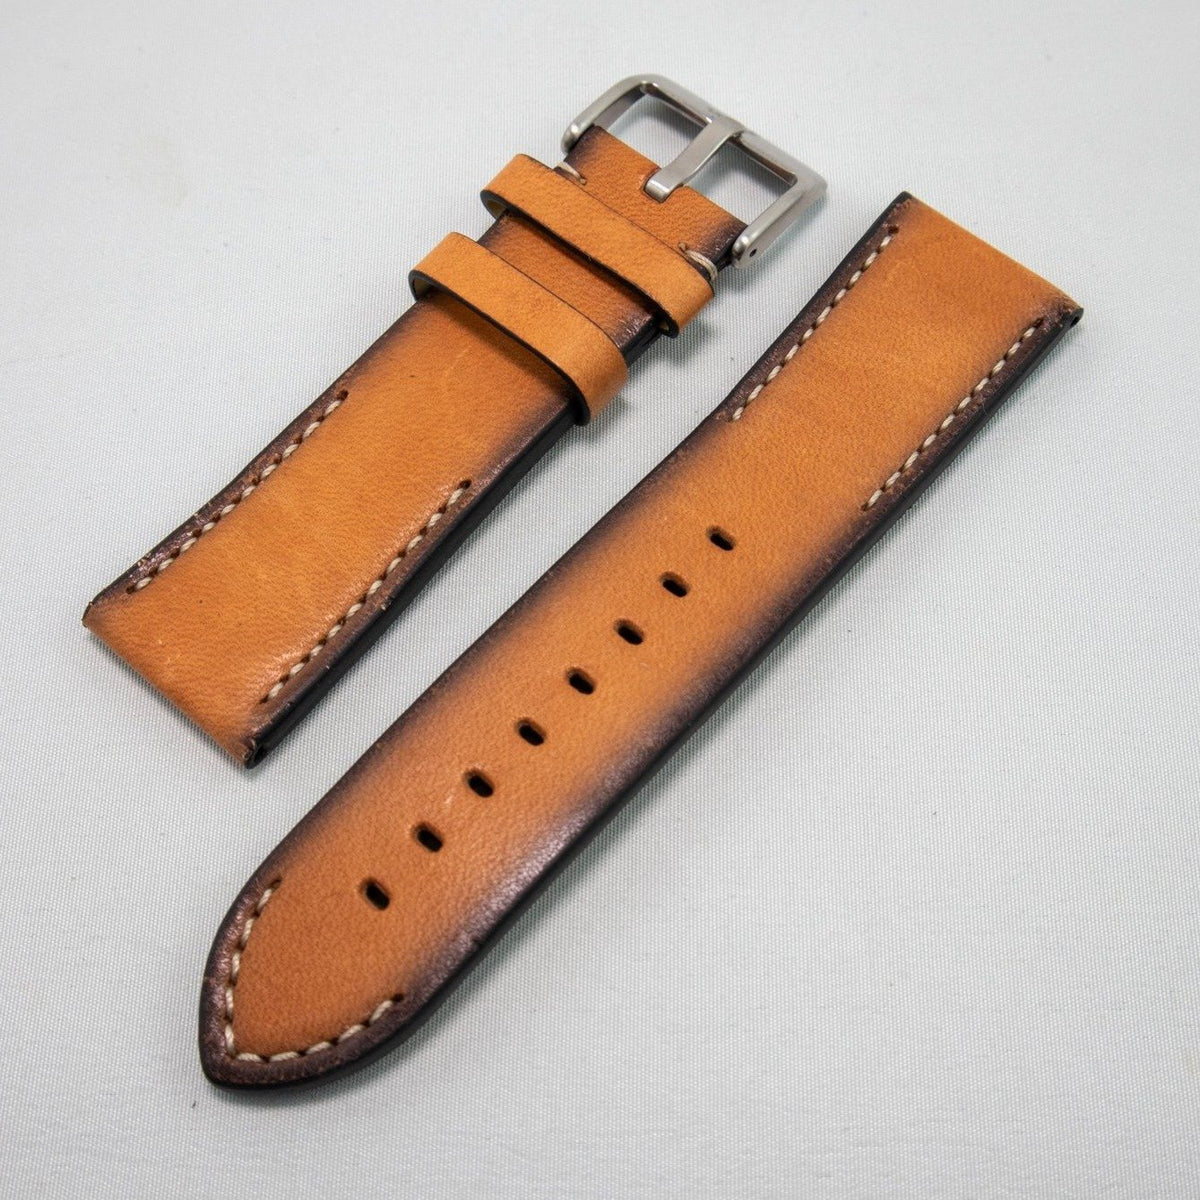 Alpine Watchstrap - Hand painted Leather